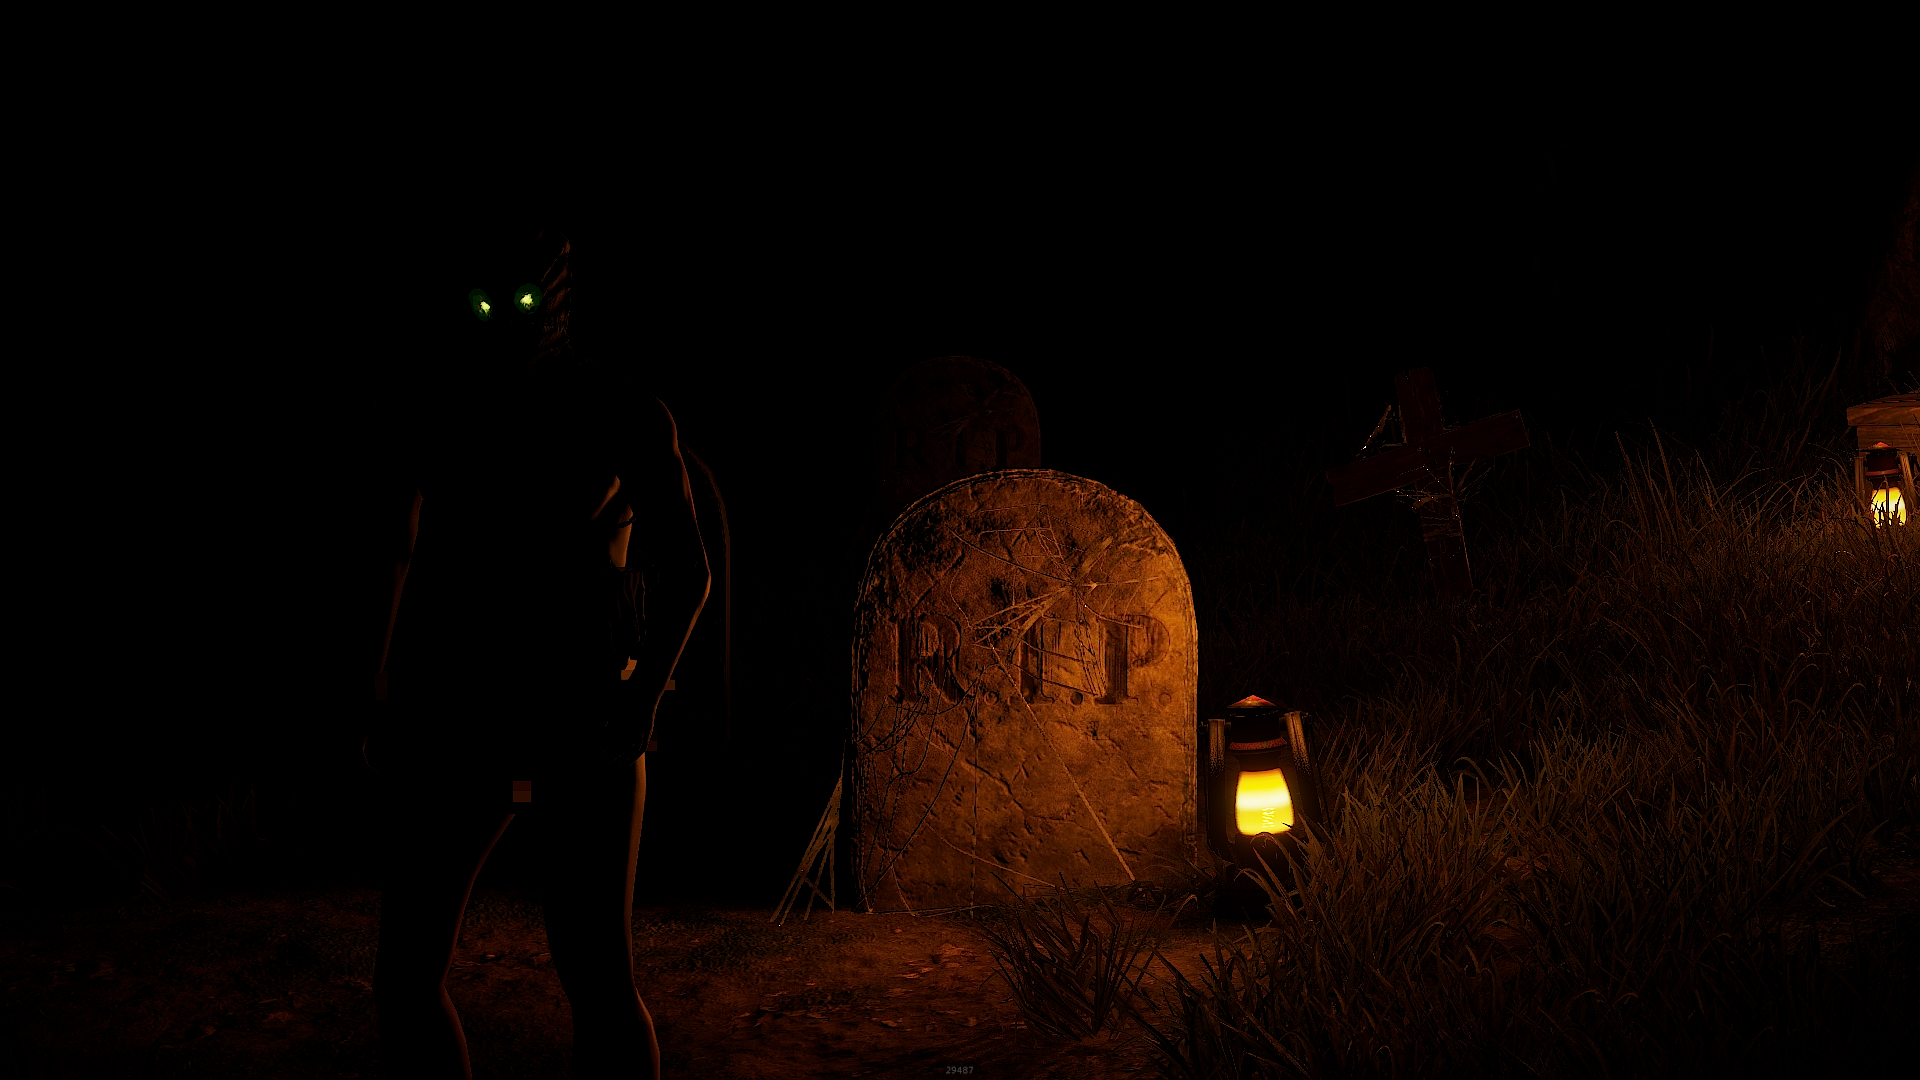 how long does night last in rust